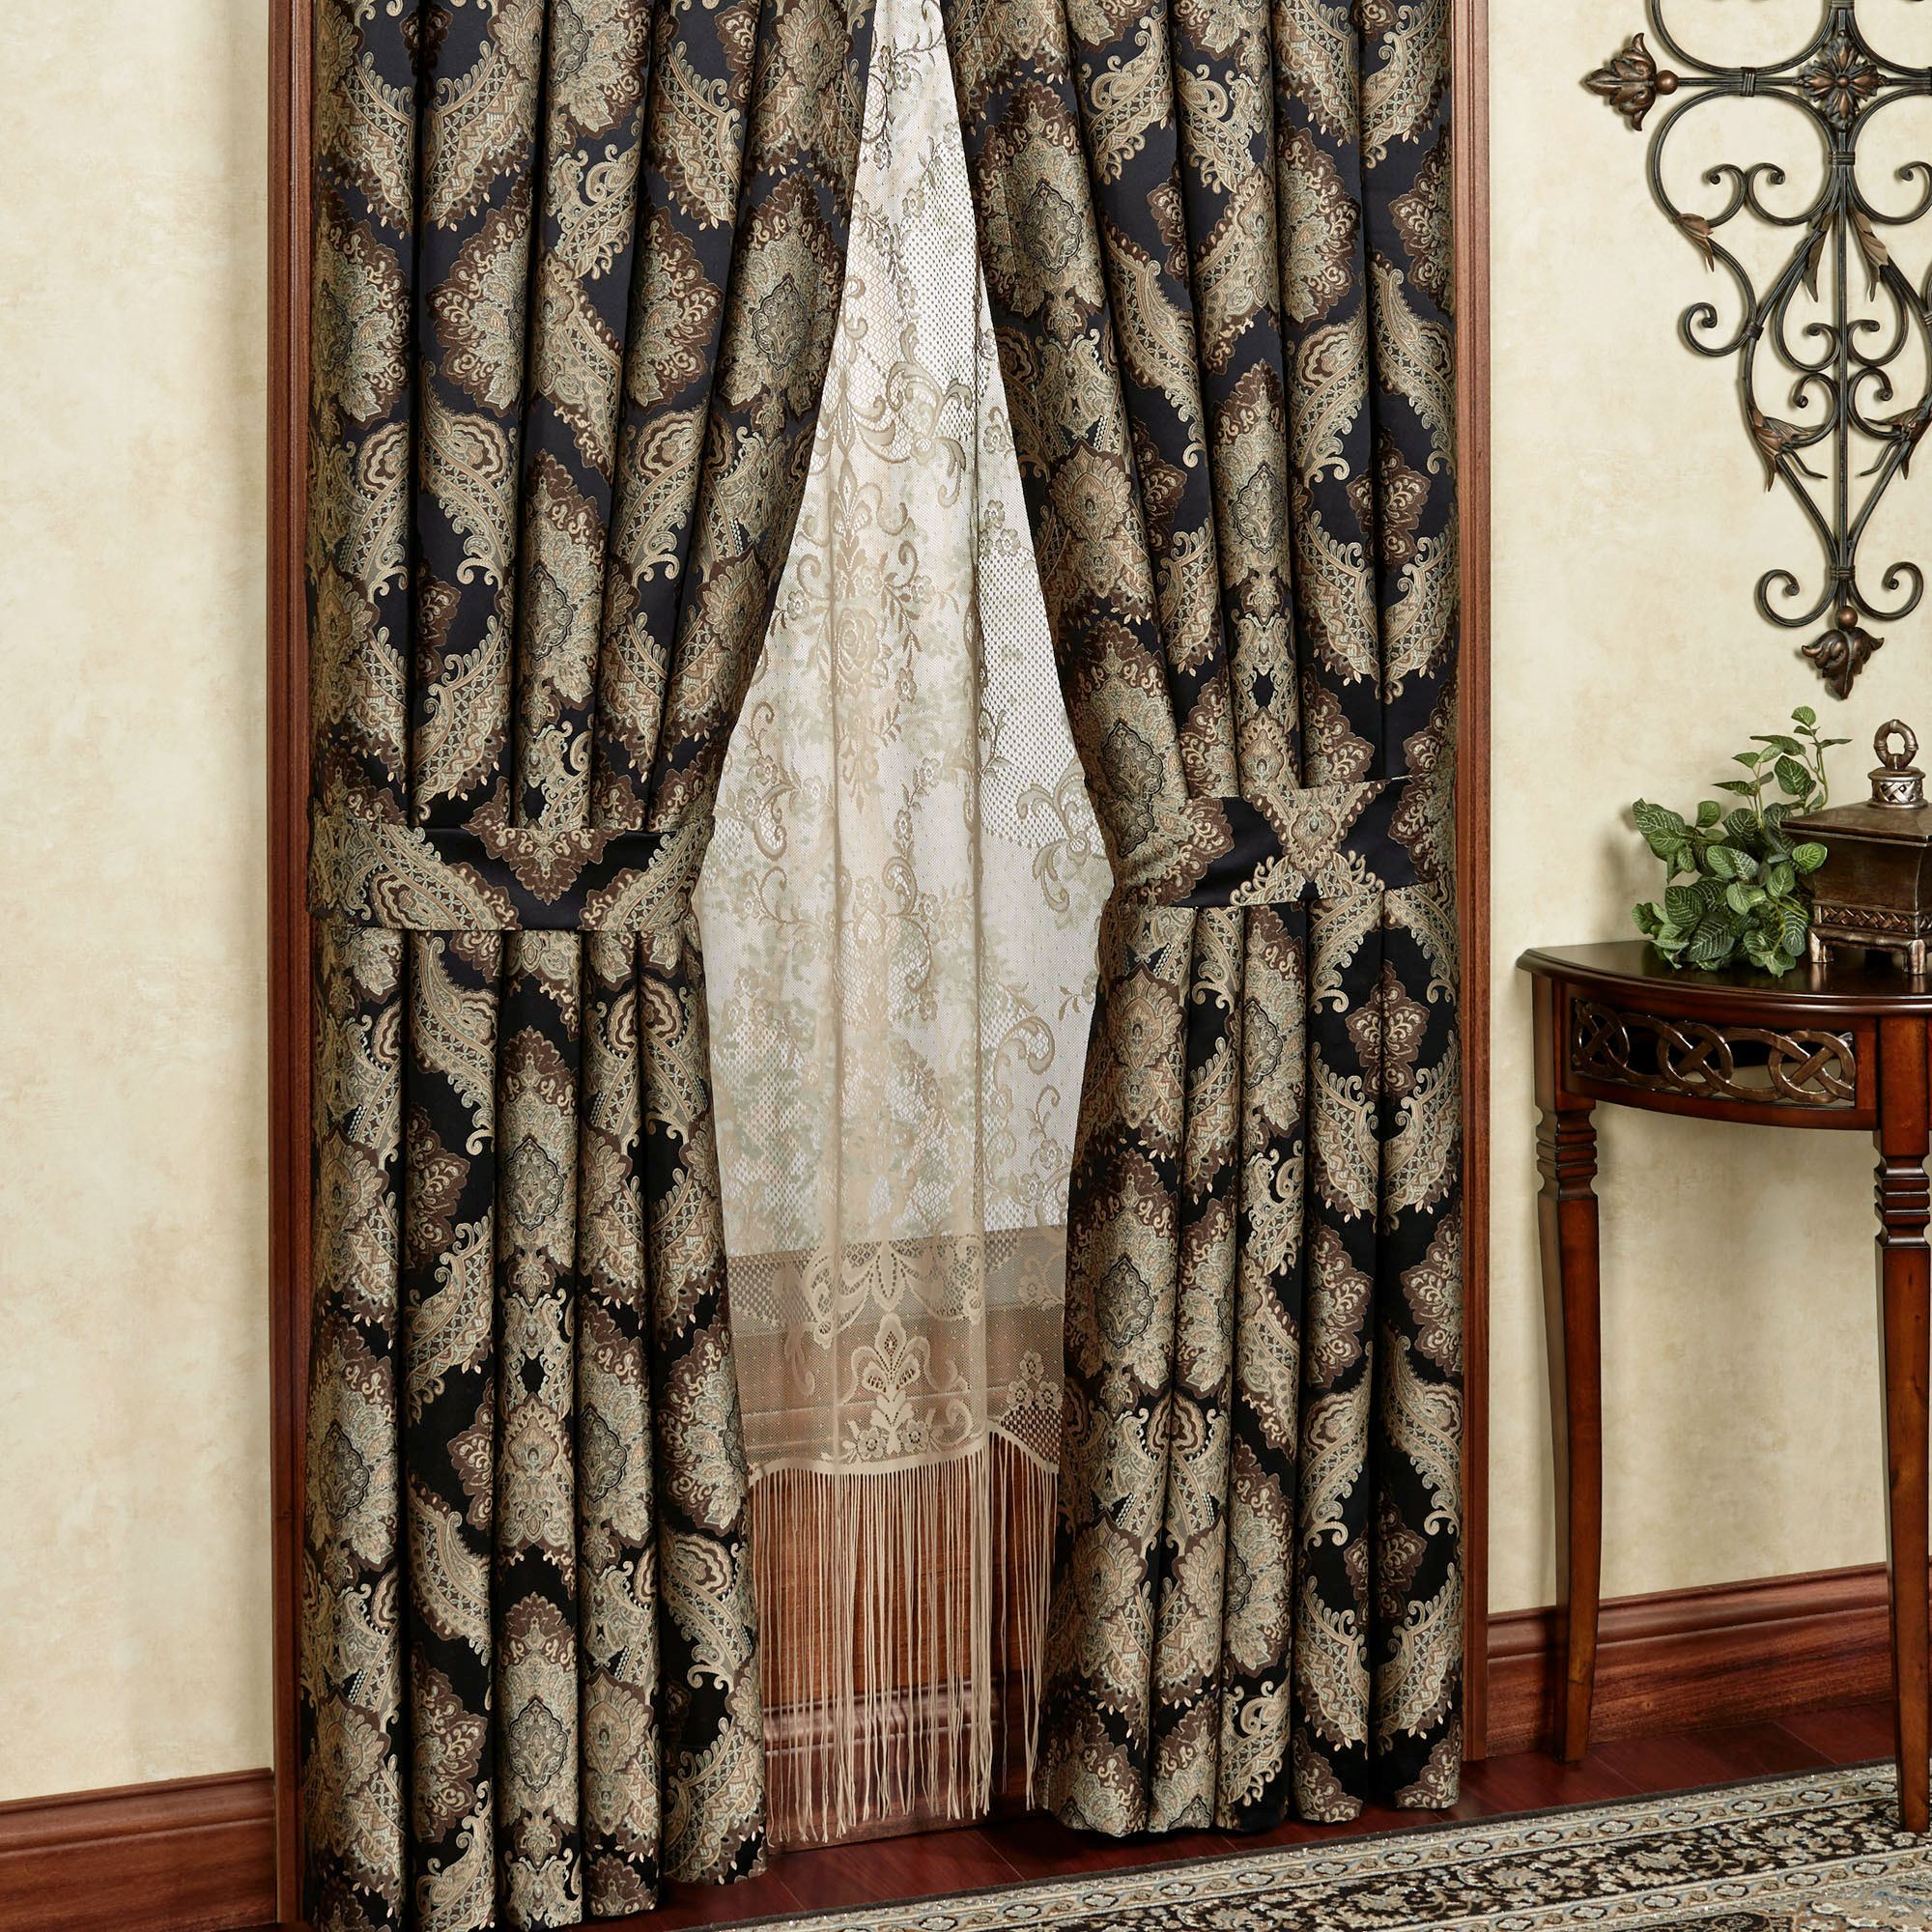 fabric arte curtain deco mg uk awesome curtains and art